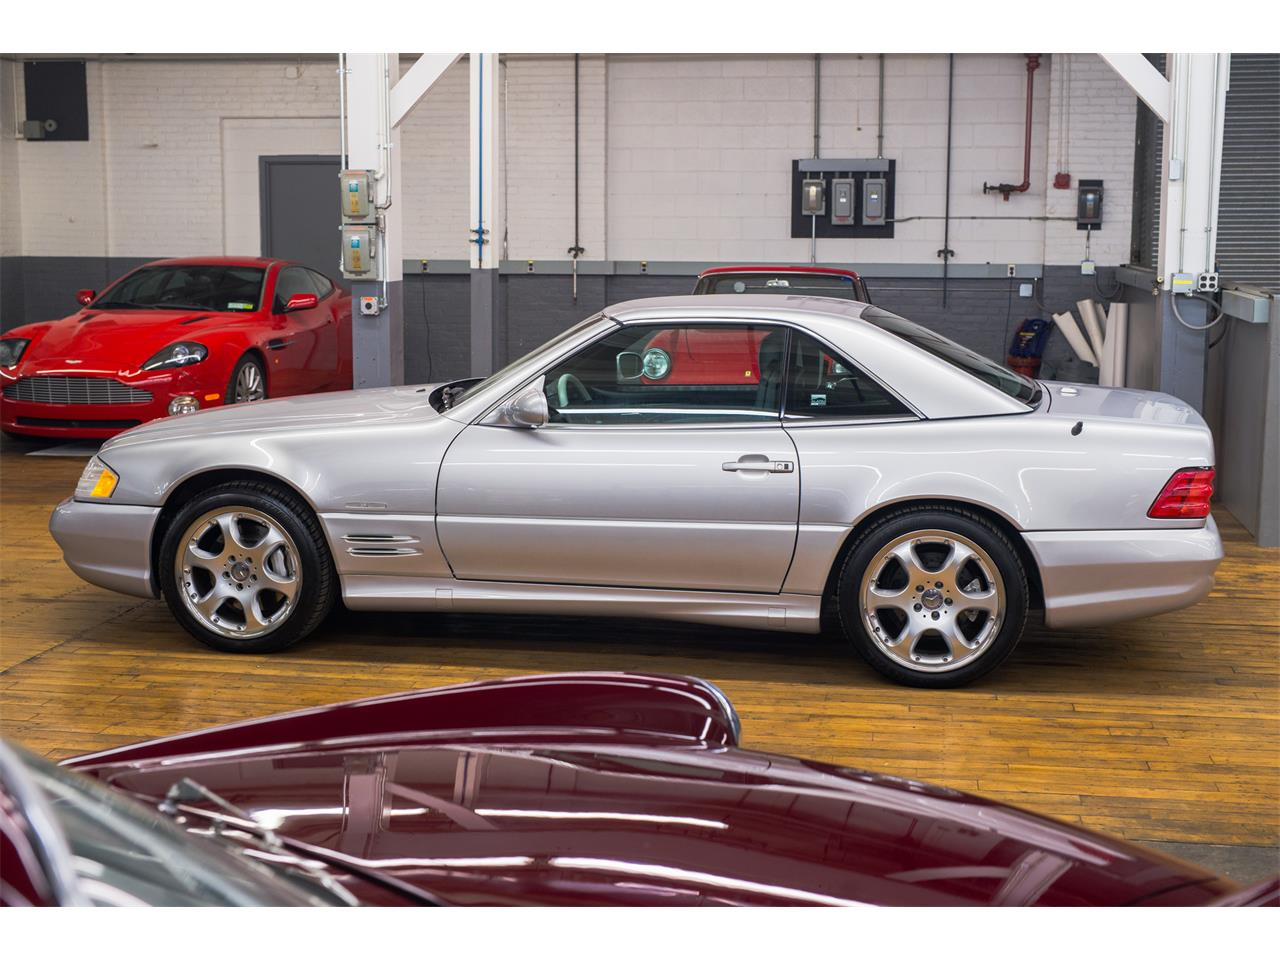 2002 Mercedes-Benz SL500 (CC-1223447) for sale in Bridgeport, Connecticut